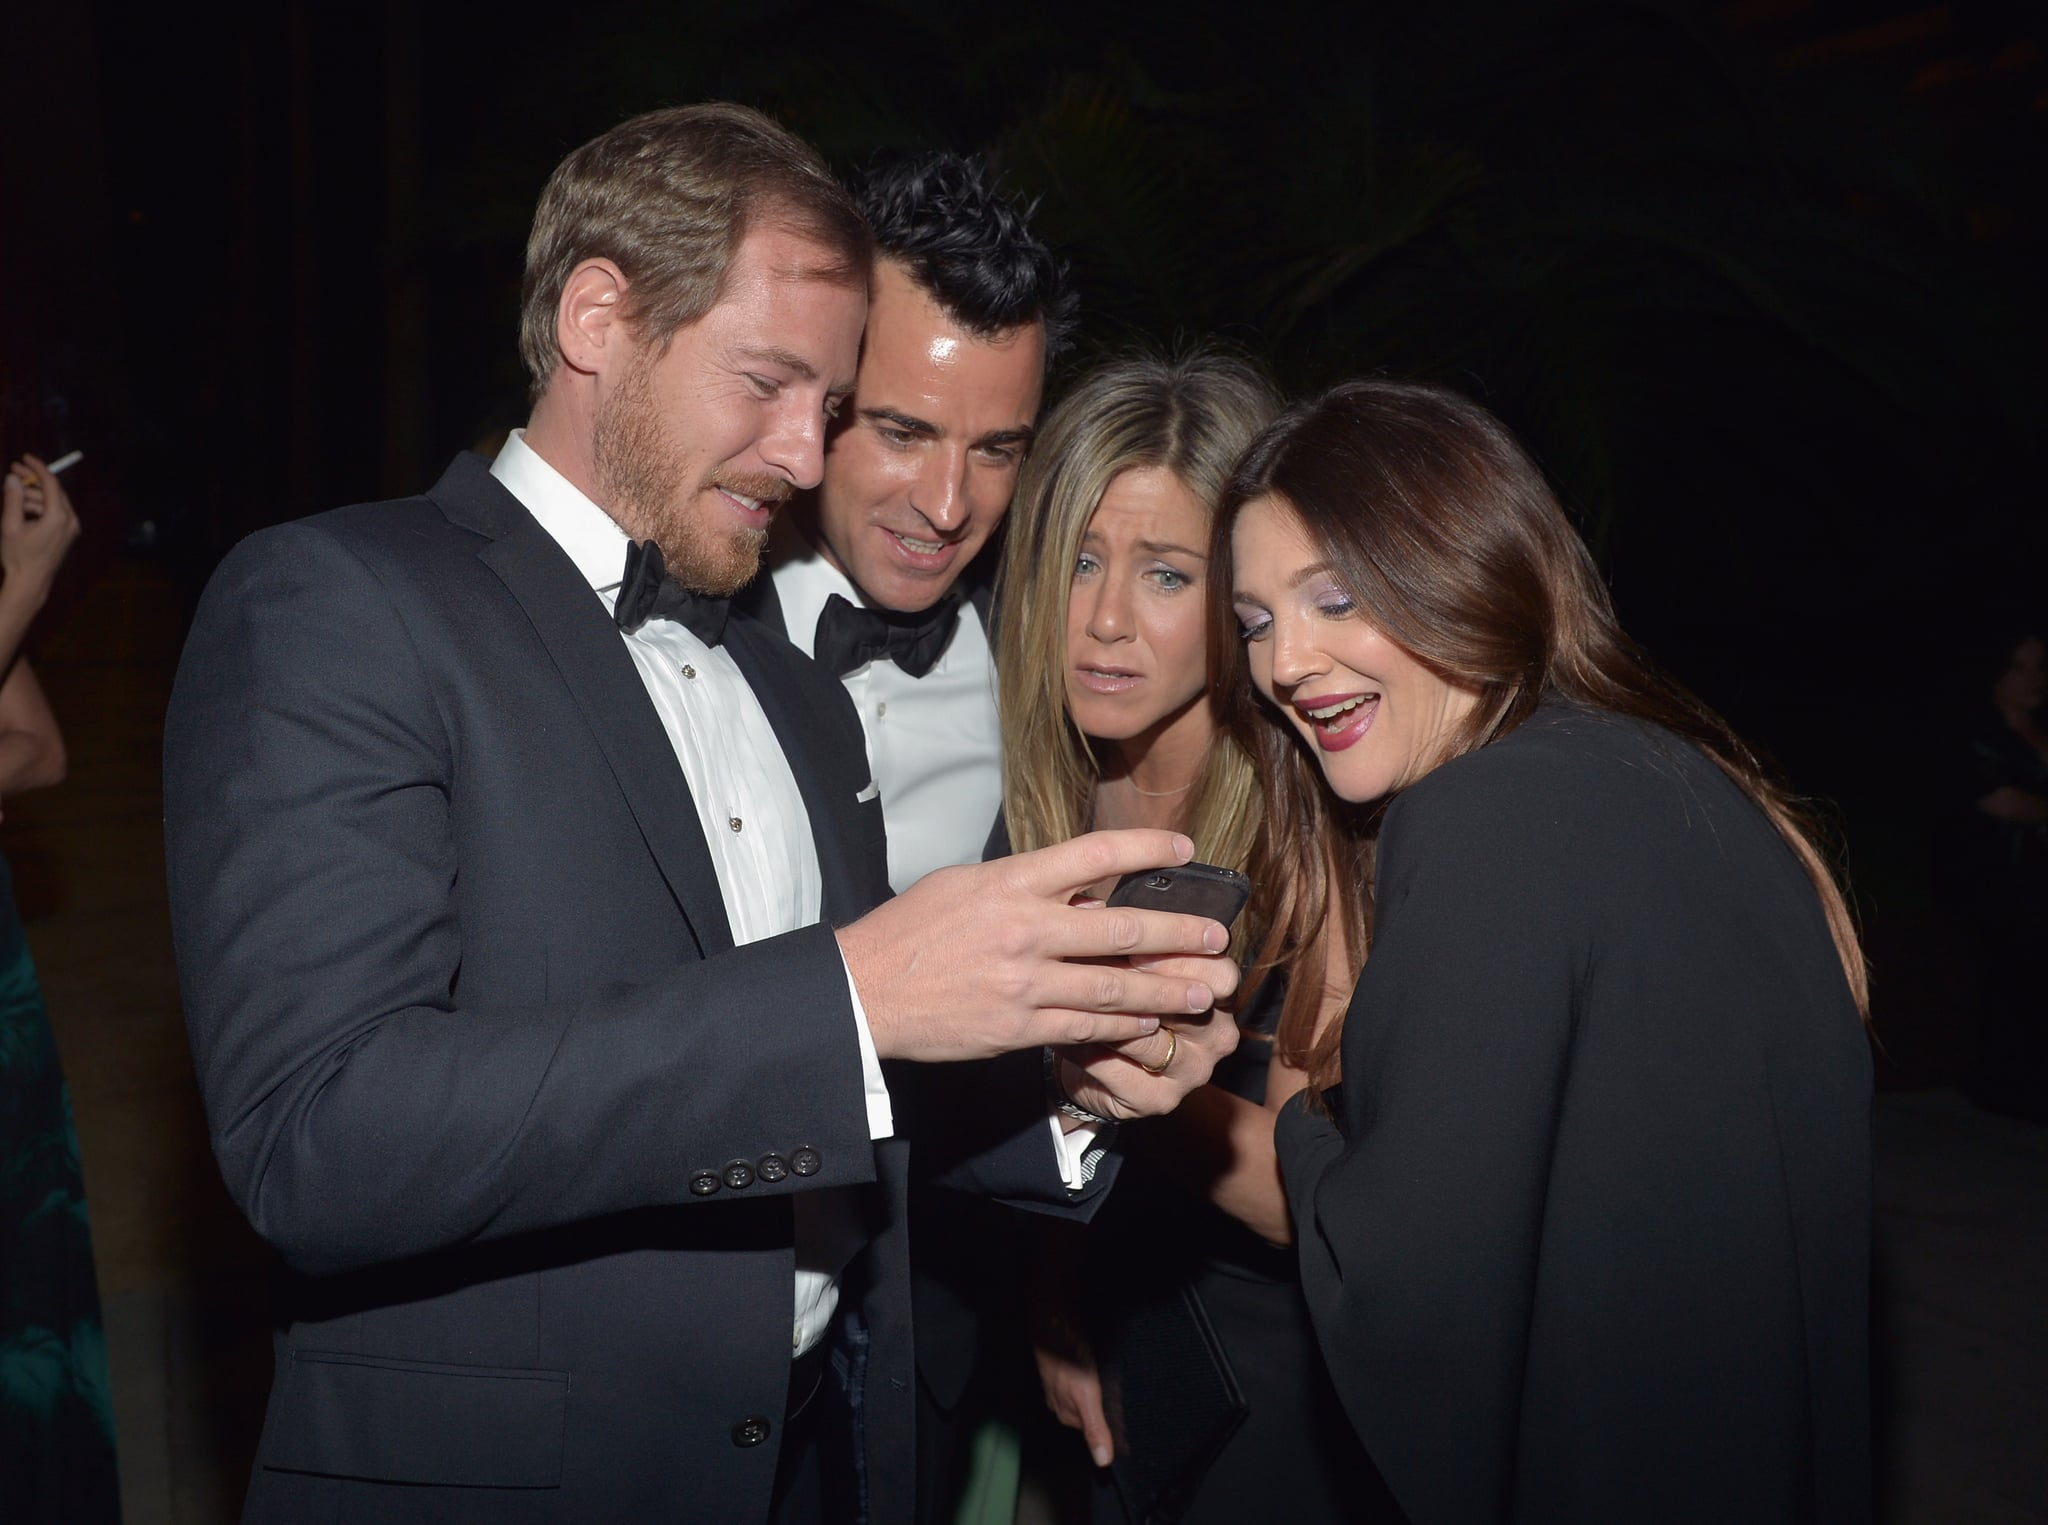 They hung out with Drew Barrymore and husband Will Kopelman in October at a LACMA 2012 Art + Film Gala in LA.